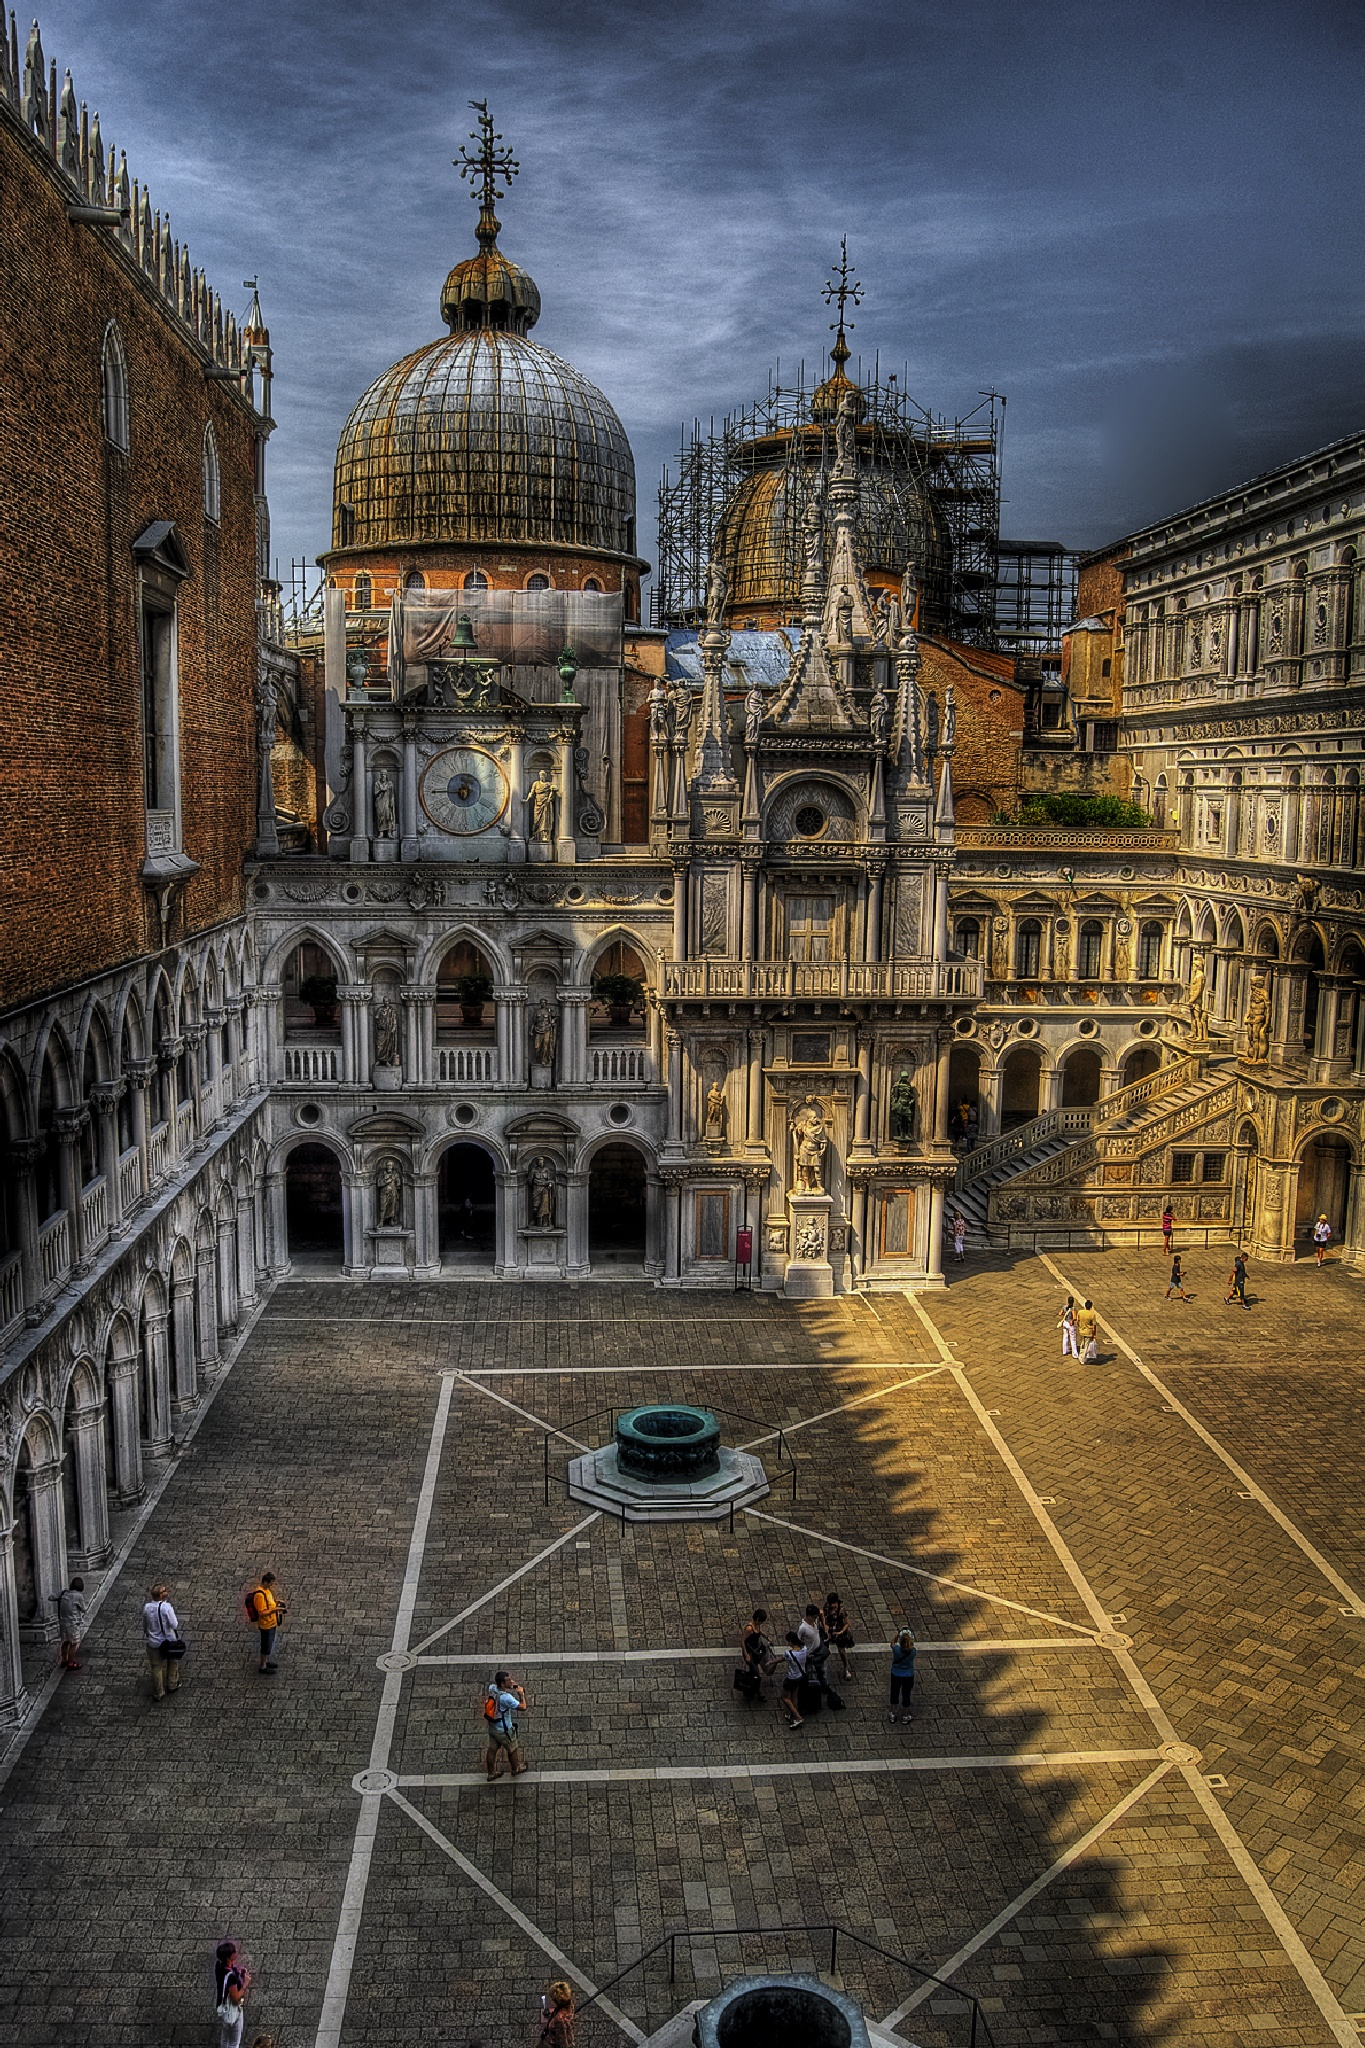 Doges palace in Venice by MarieJirousek